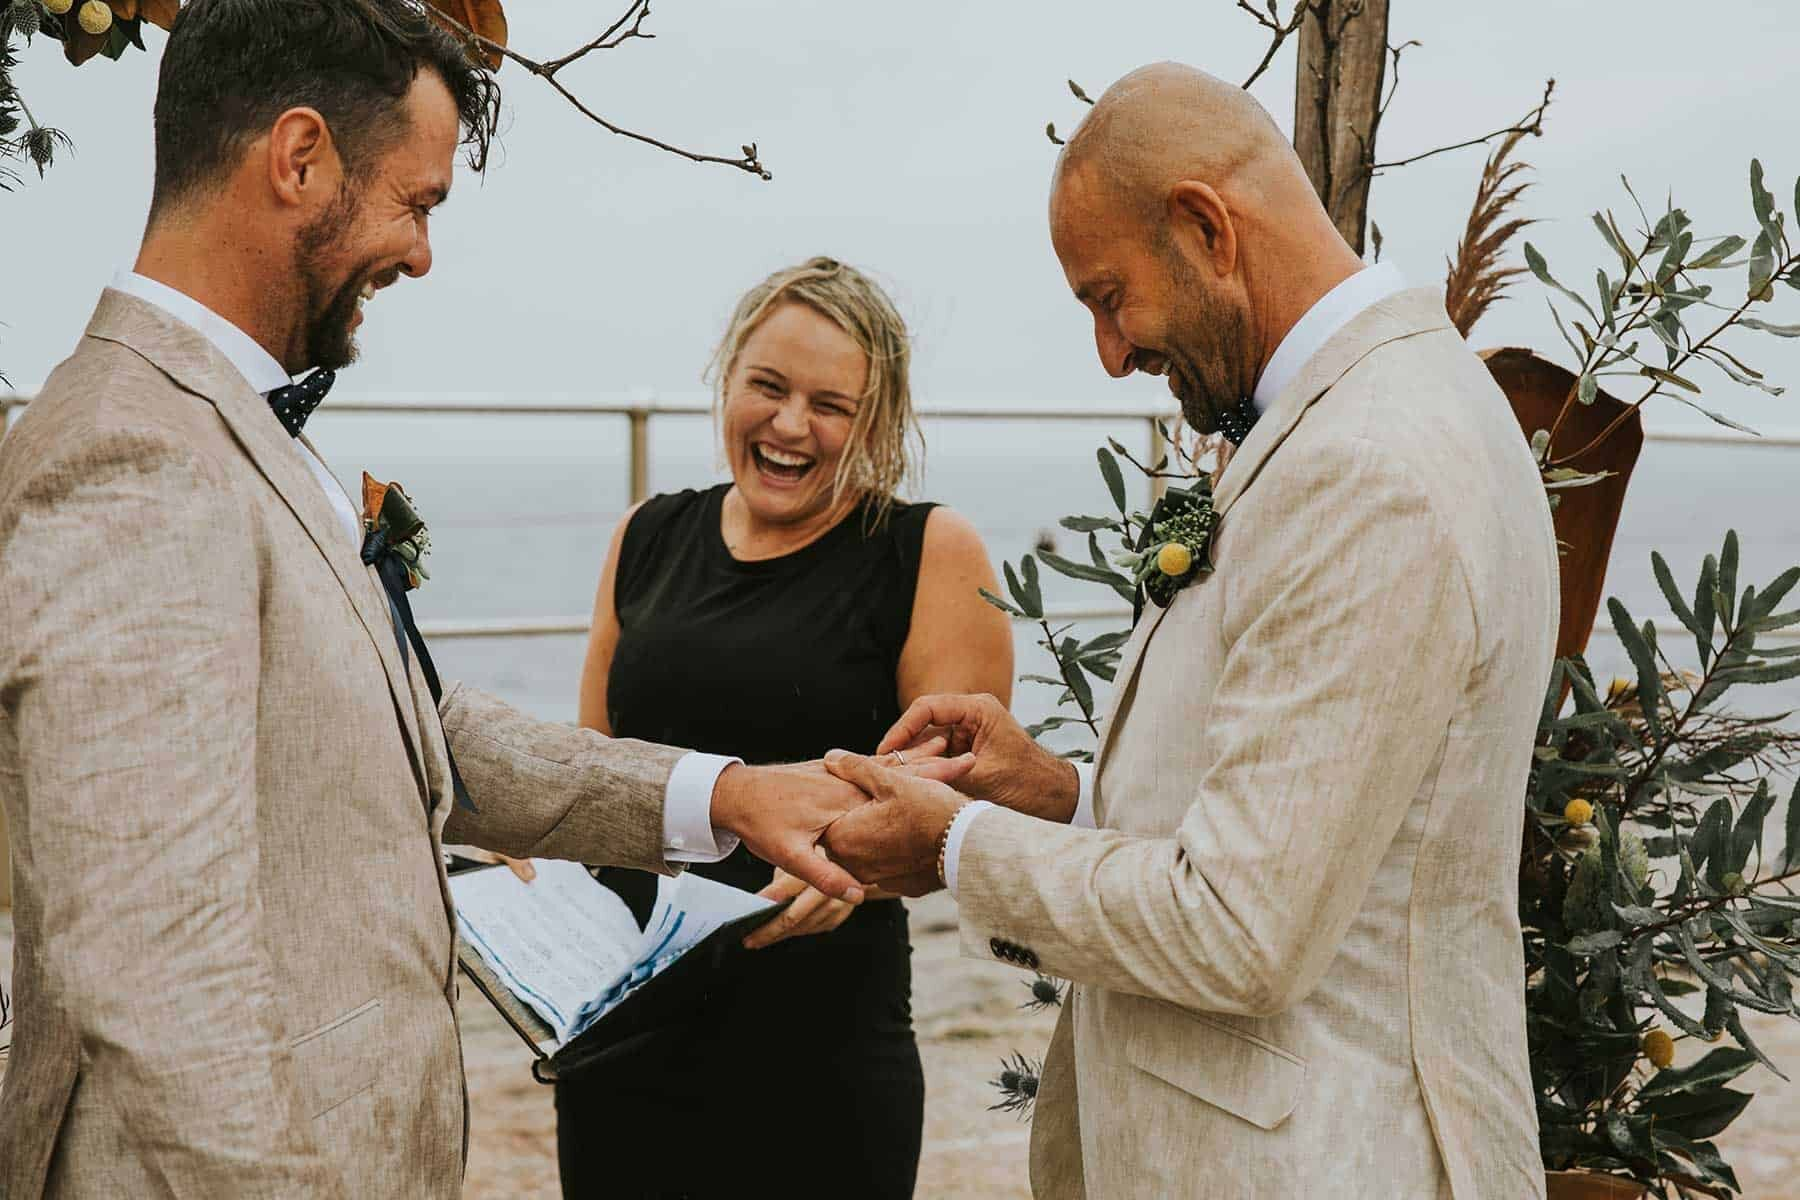 rainy North Bondi beach wedding in Sydney